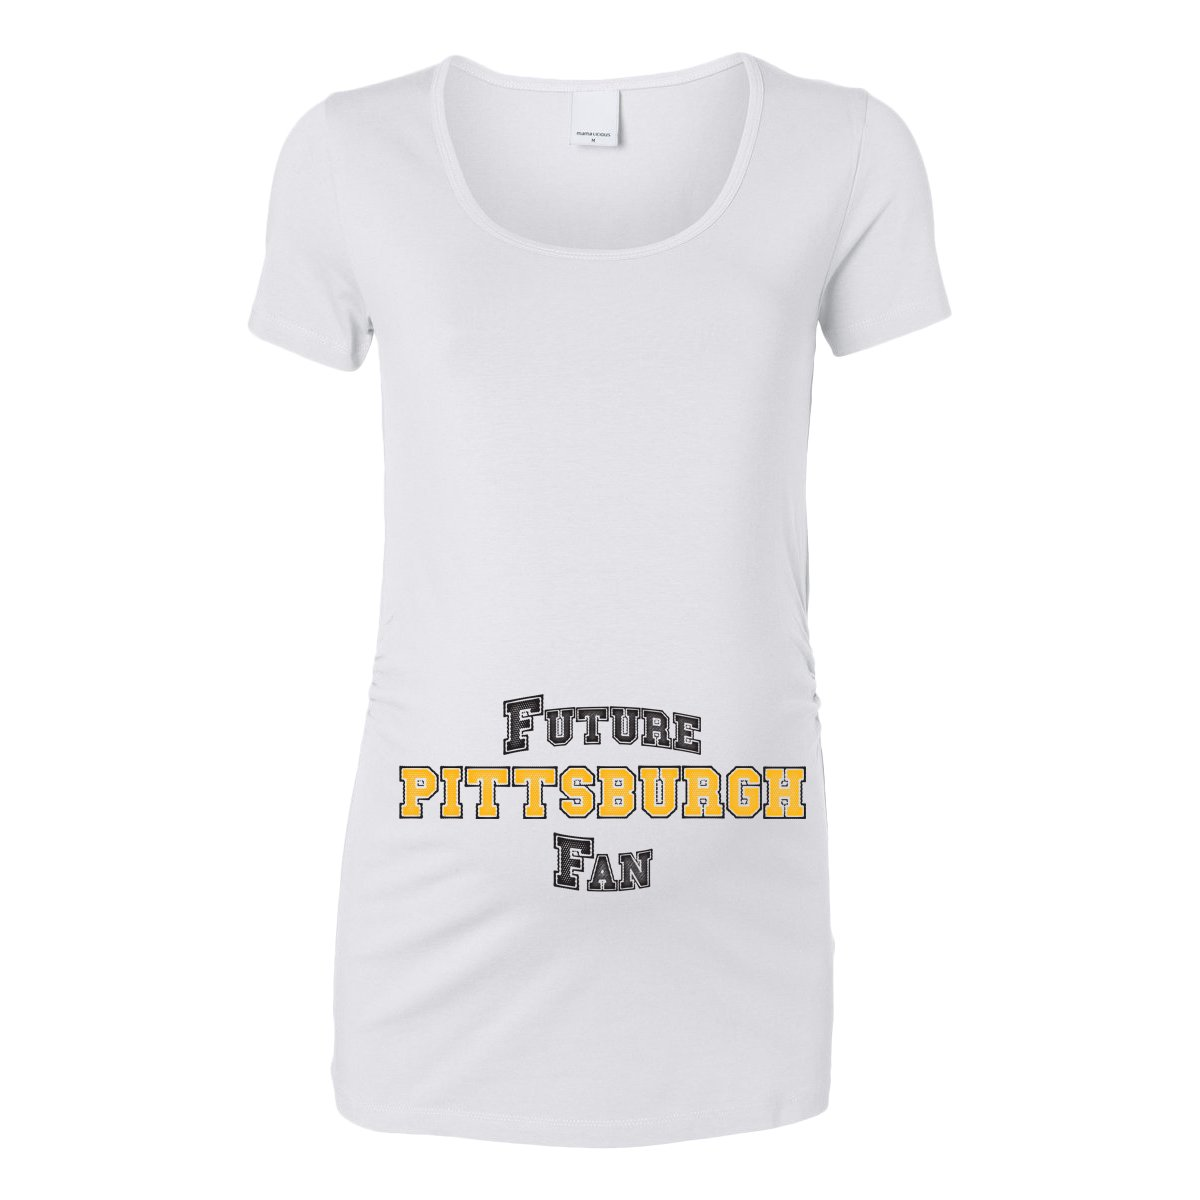 Future Pittsburgh Fan Women's Maternity T-Shirt 101909